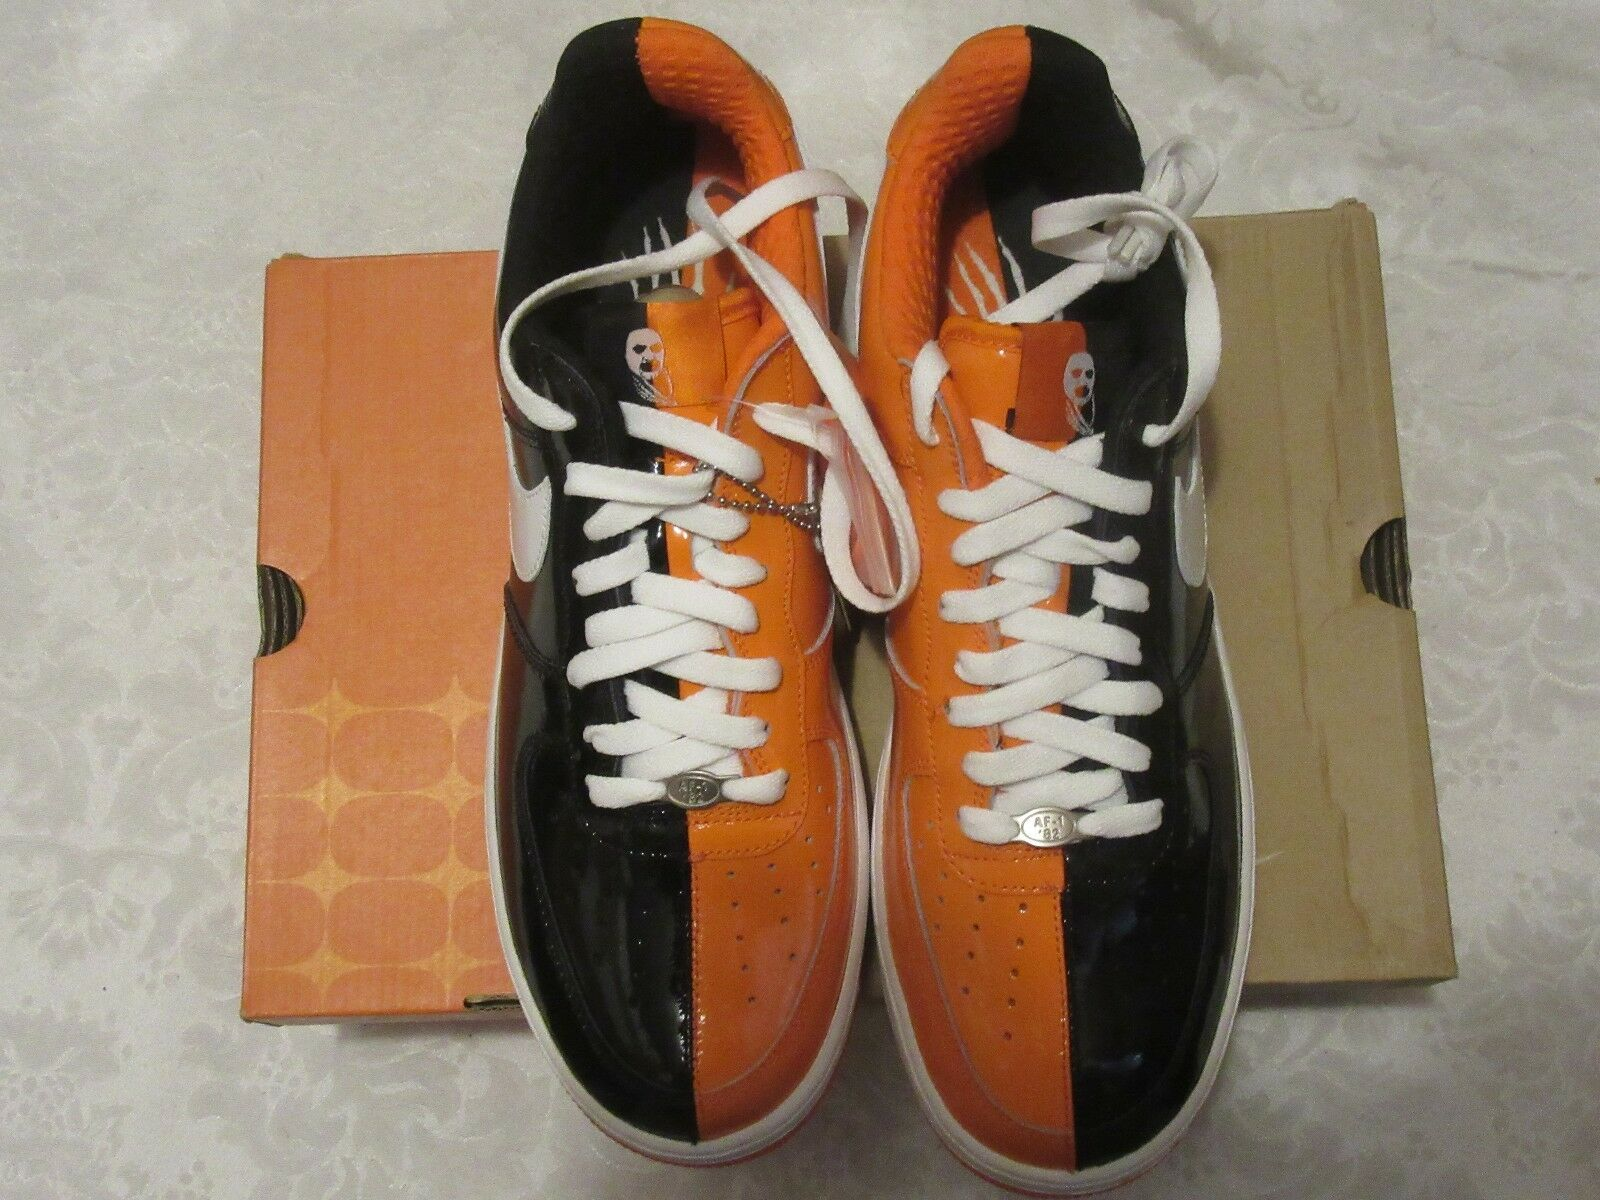 Nike air force 1 premium af1 halloween schwarz - orange sneaker 313641 011 größe 10,5 sneaker orange 854b7f